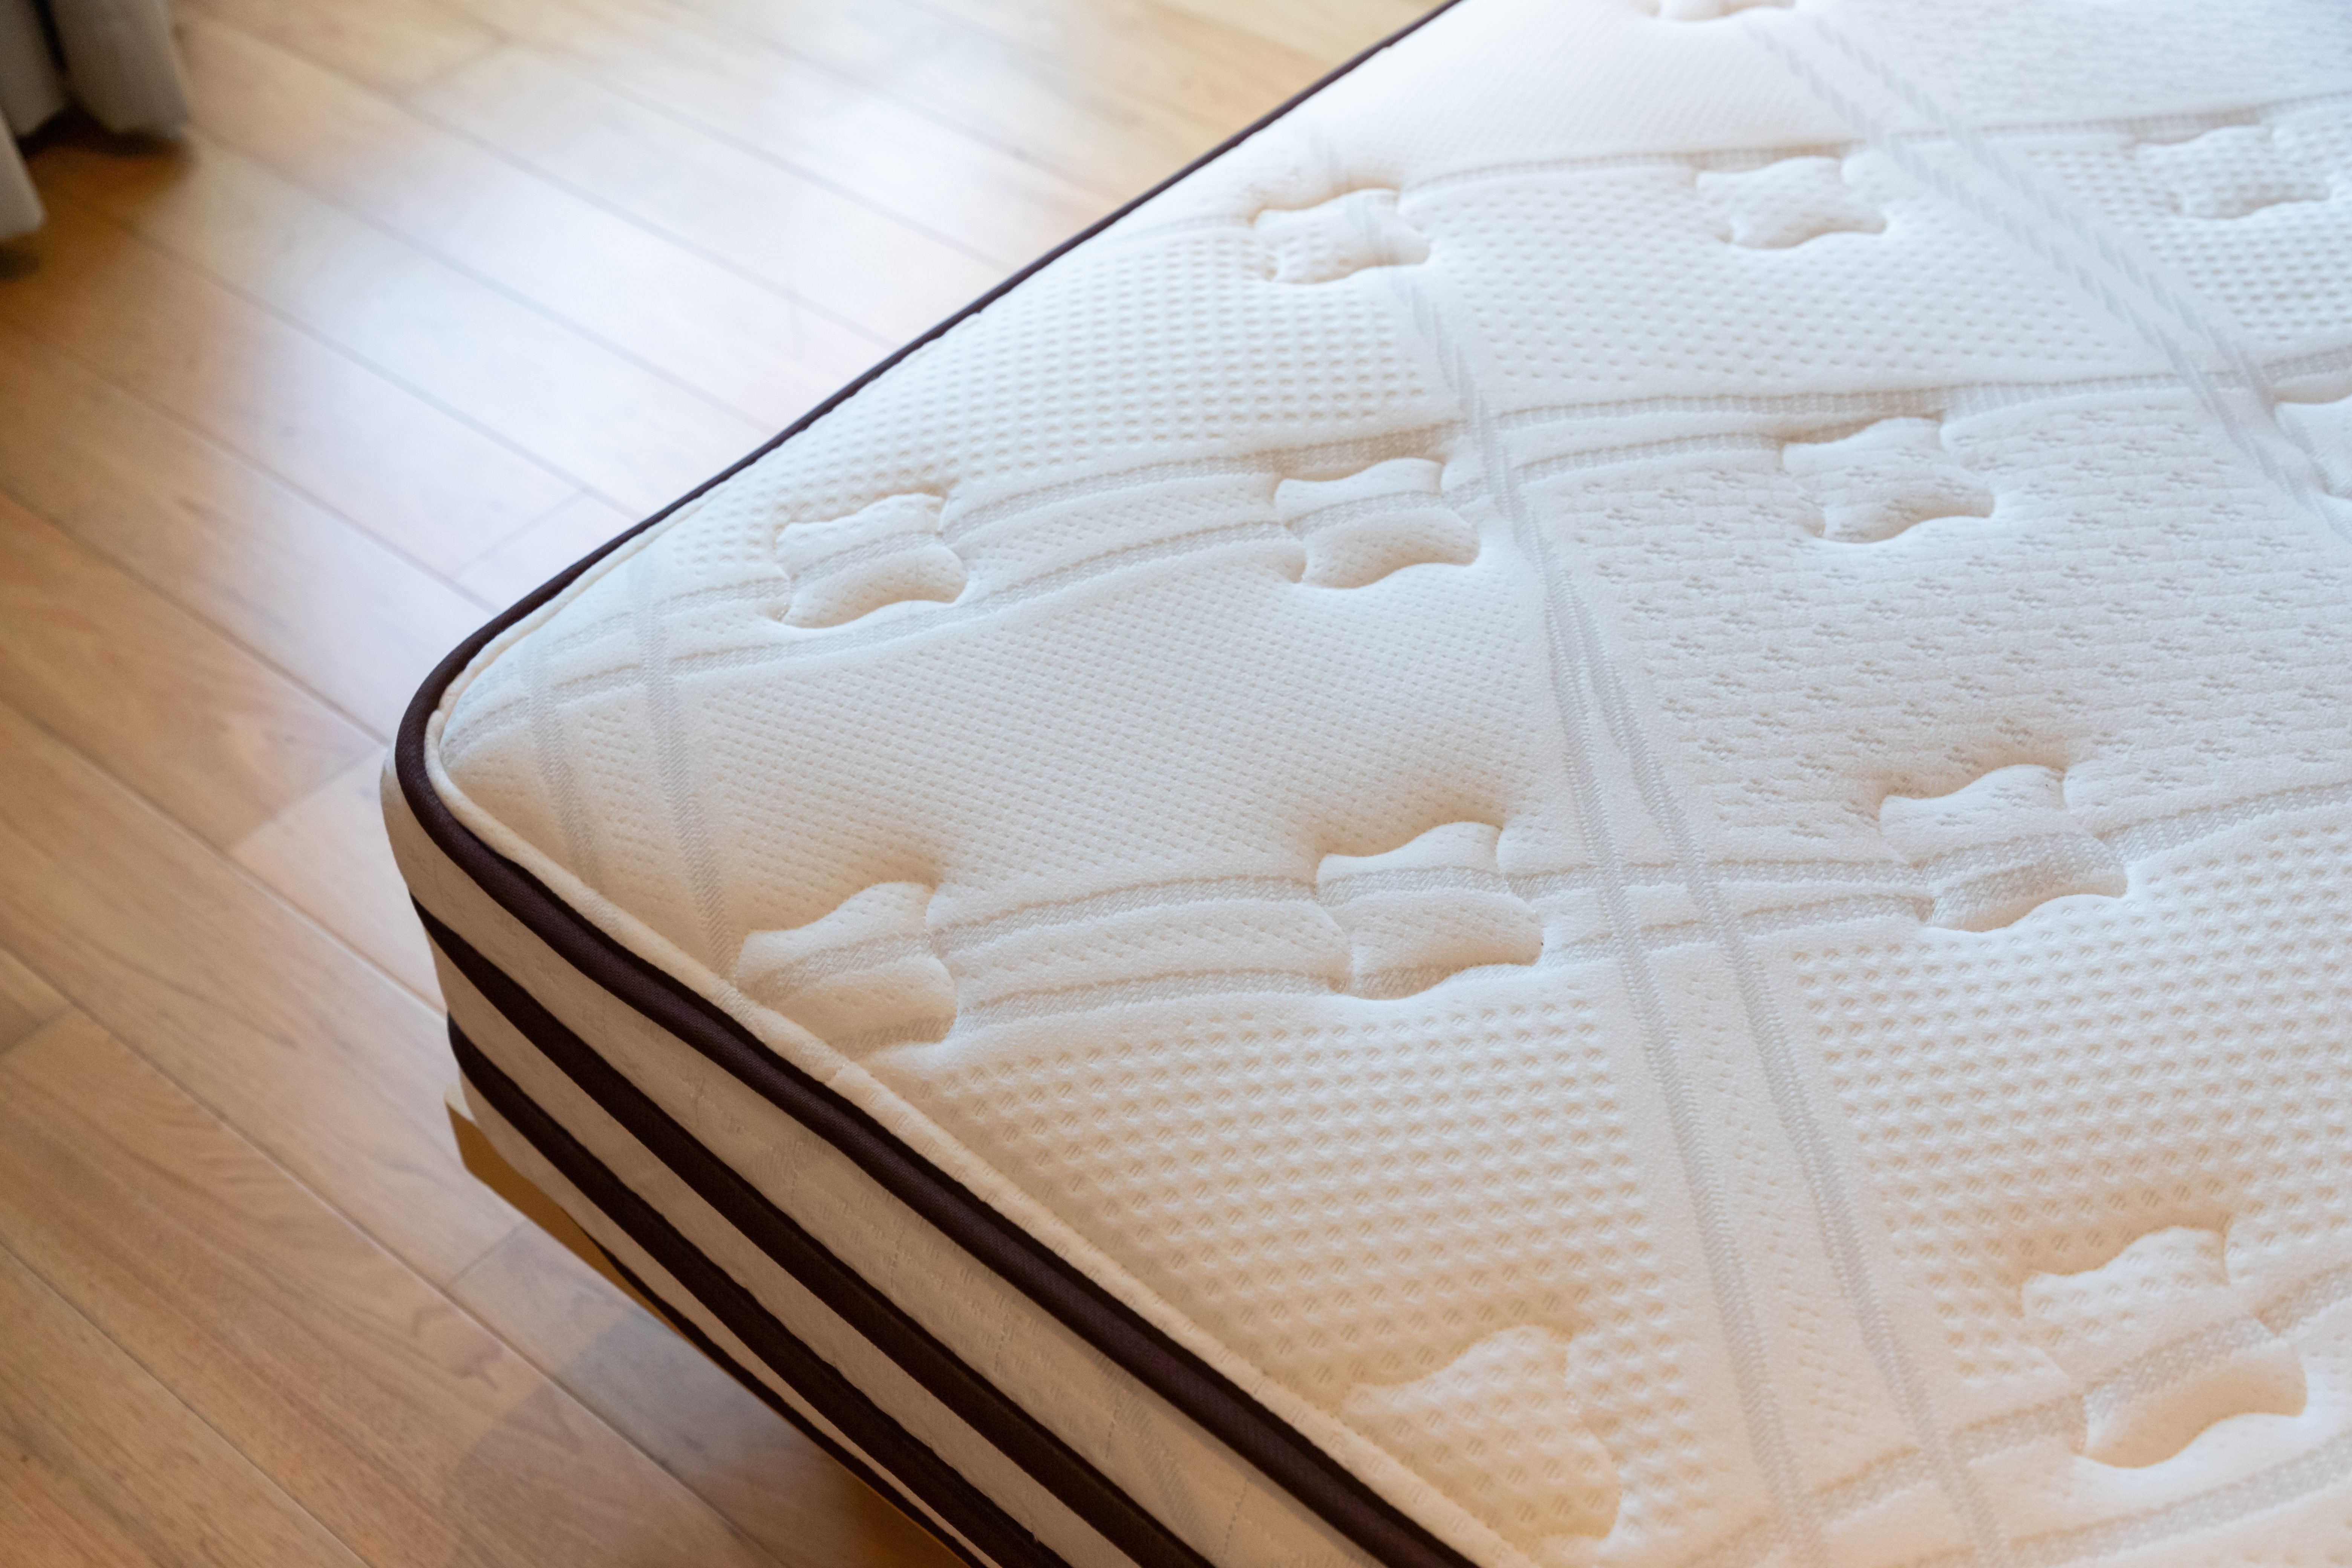 soft mattress, dust mites on bed, concept : allergy in bed room.